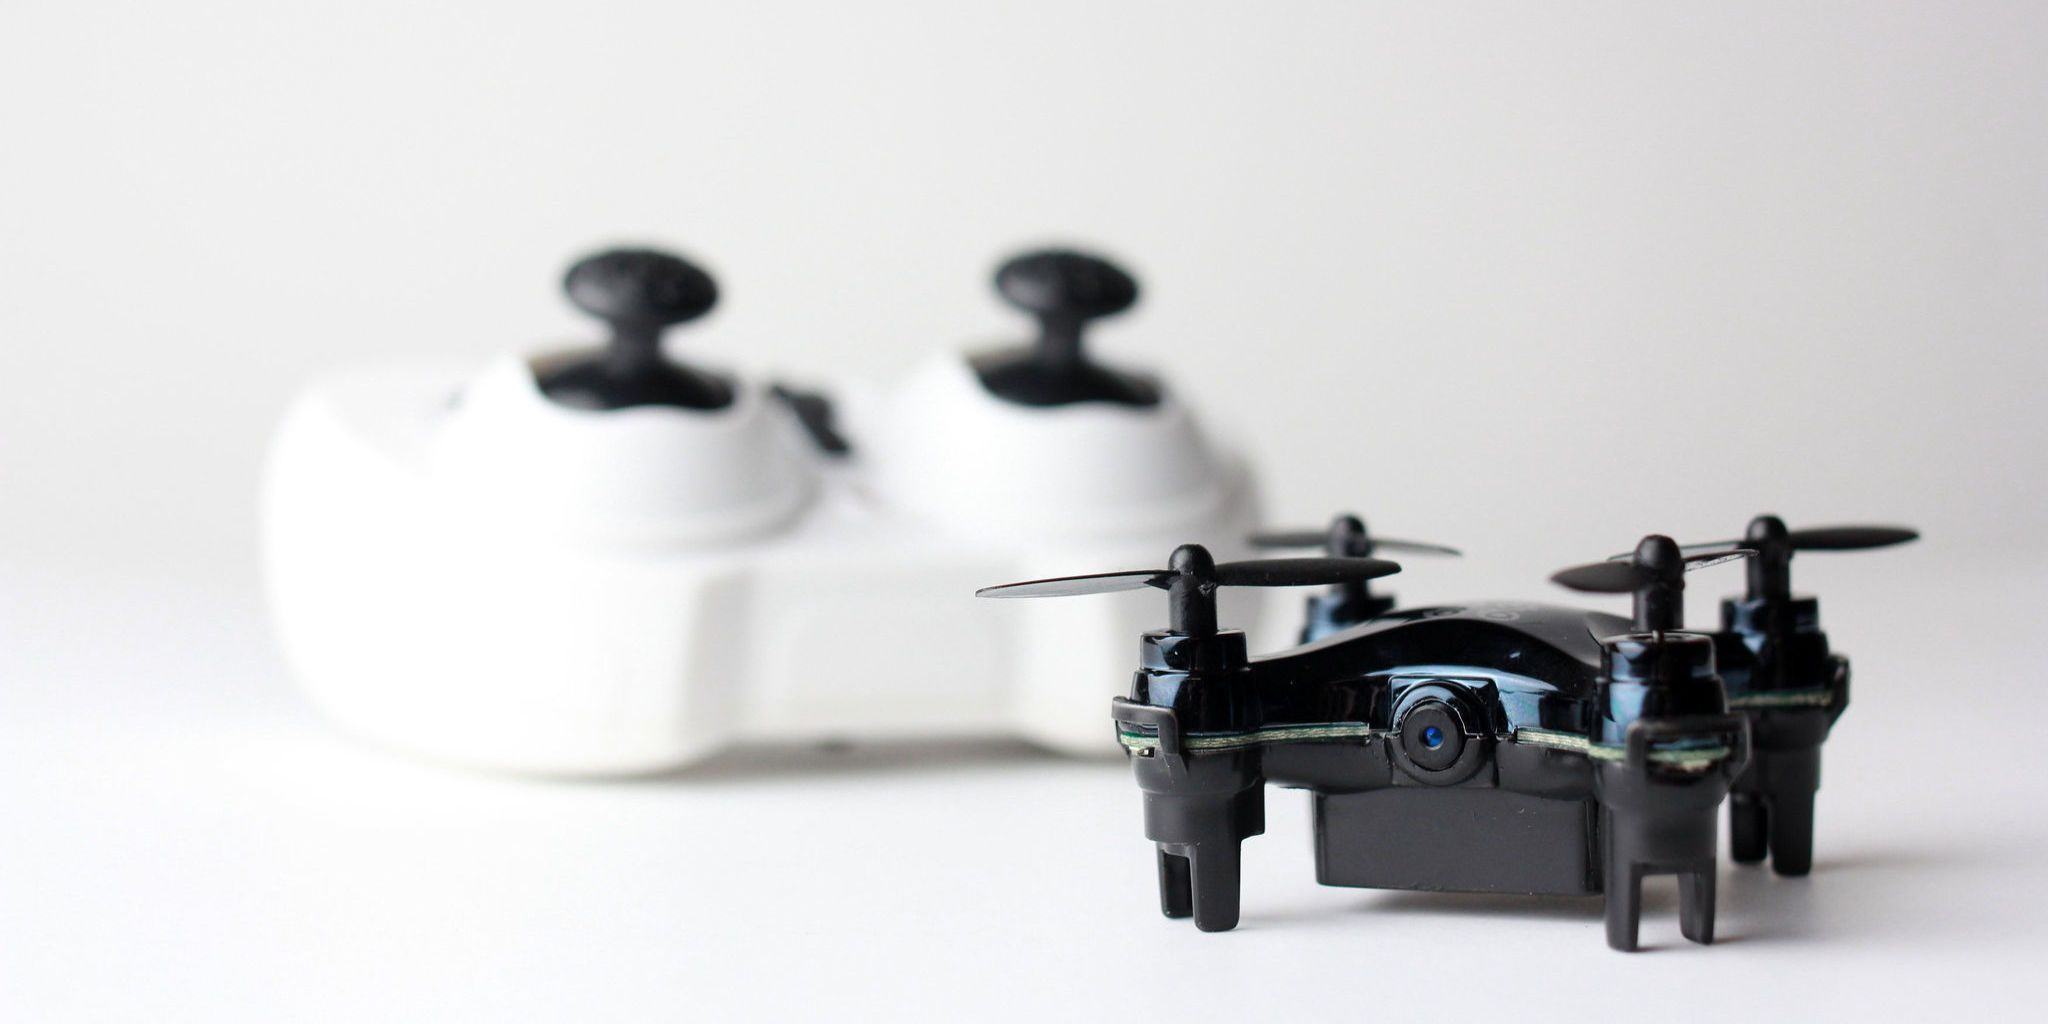 Itty-Bitty Drone Has a Tiny Live-Streaming Camera